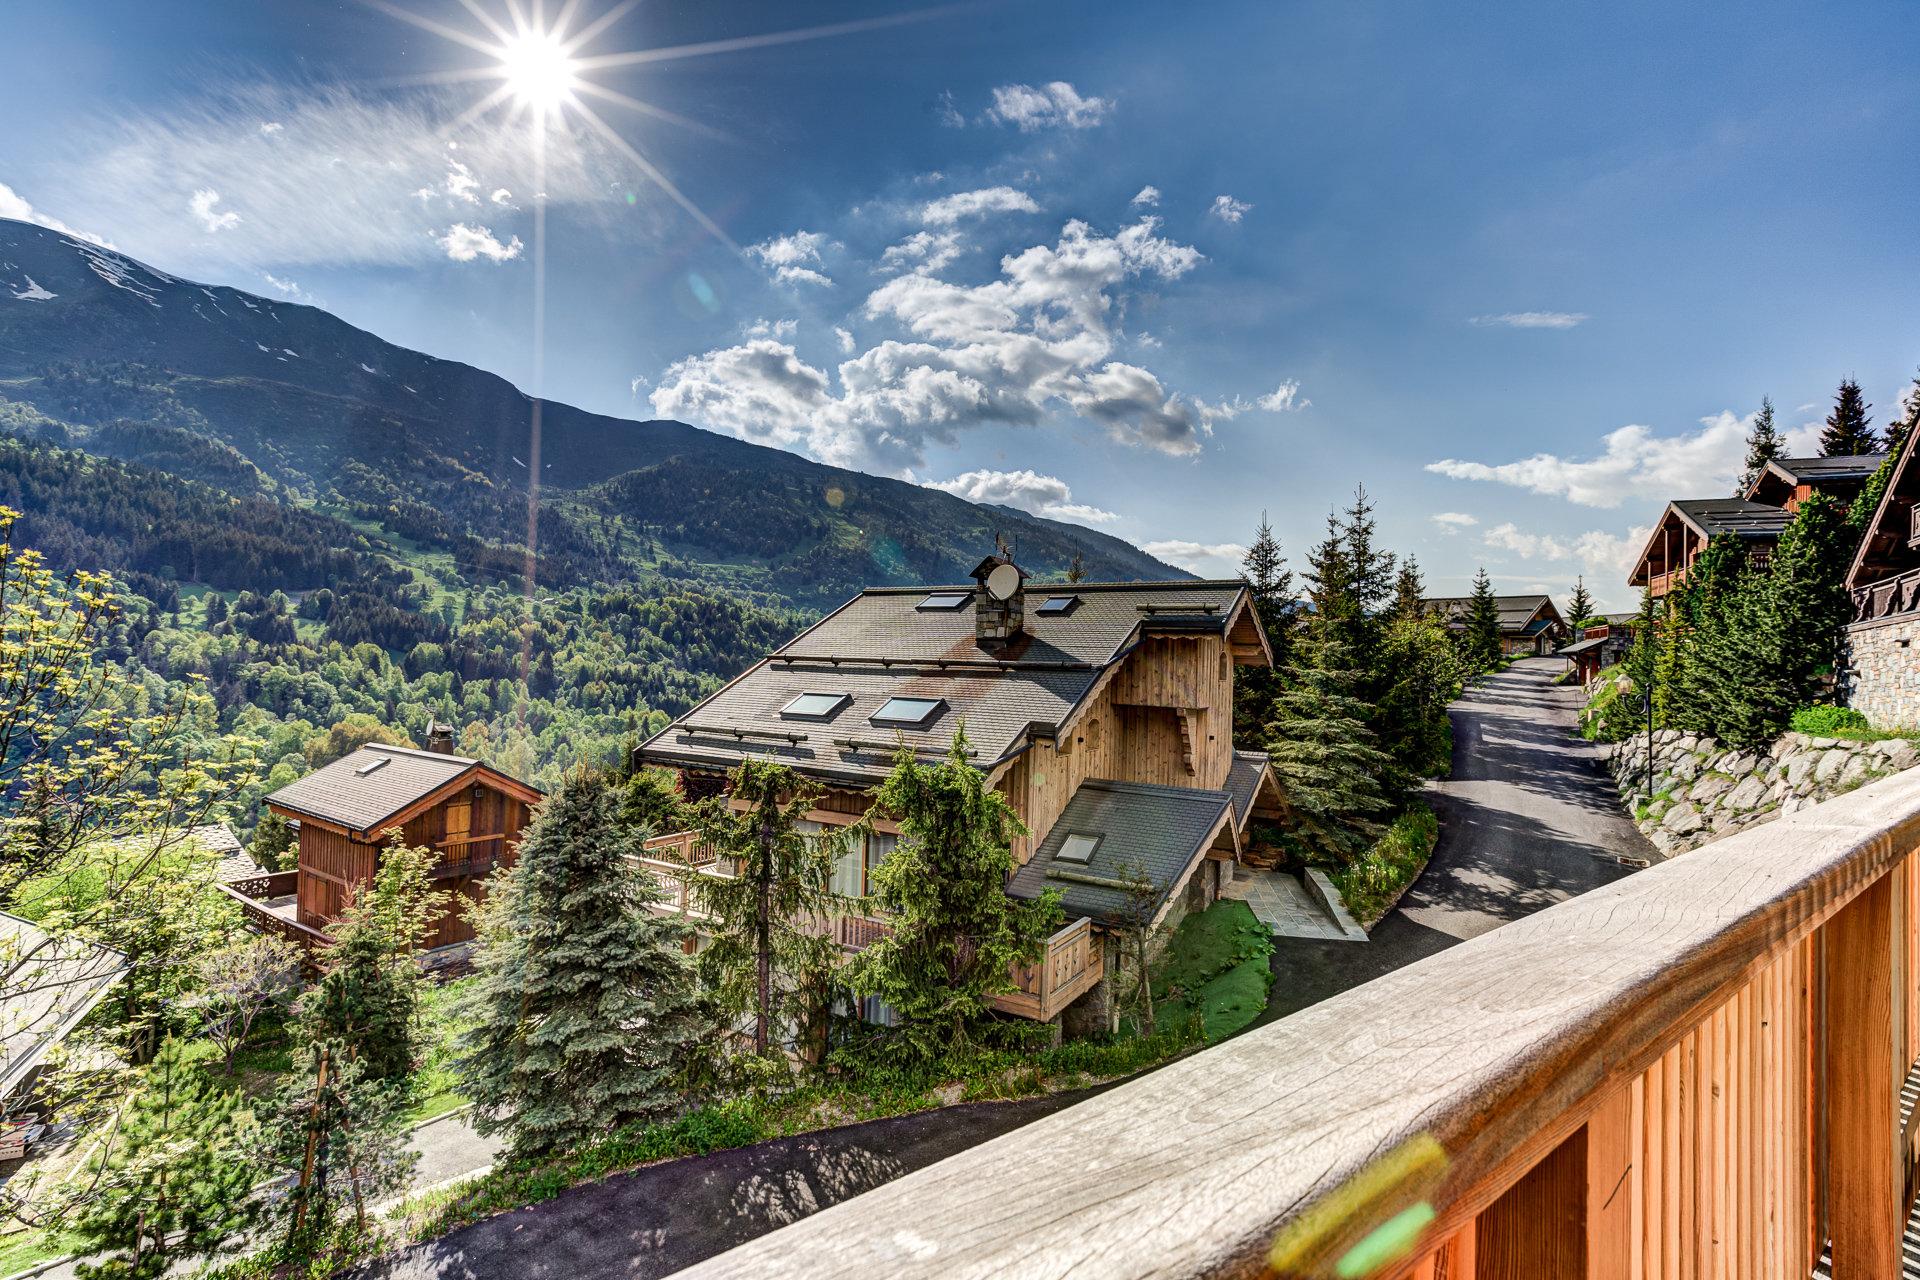 200 sqm, contemporary chalet with view